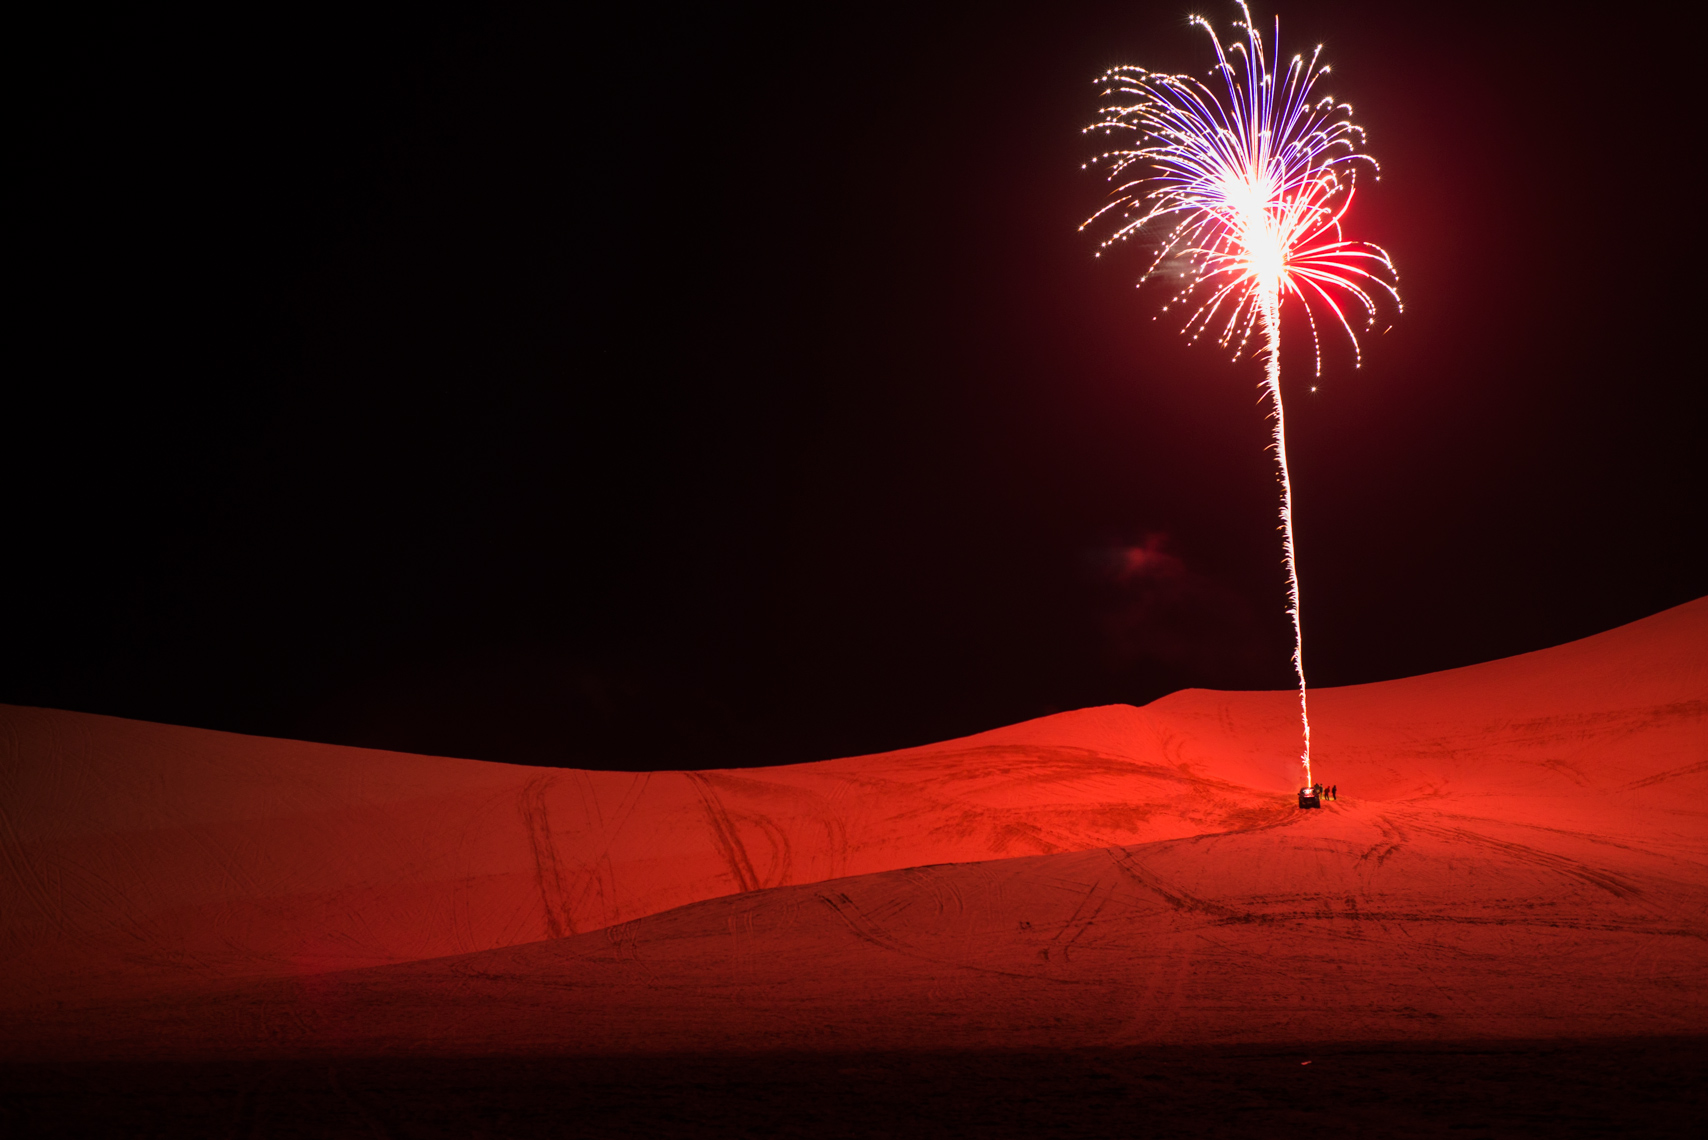 New Years Eve celebration at Dumont dunes